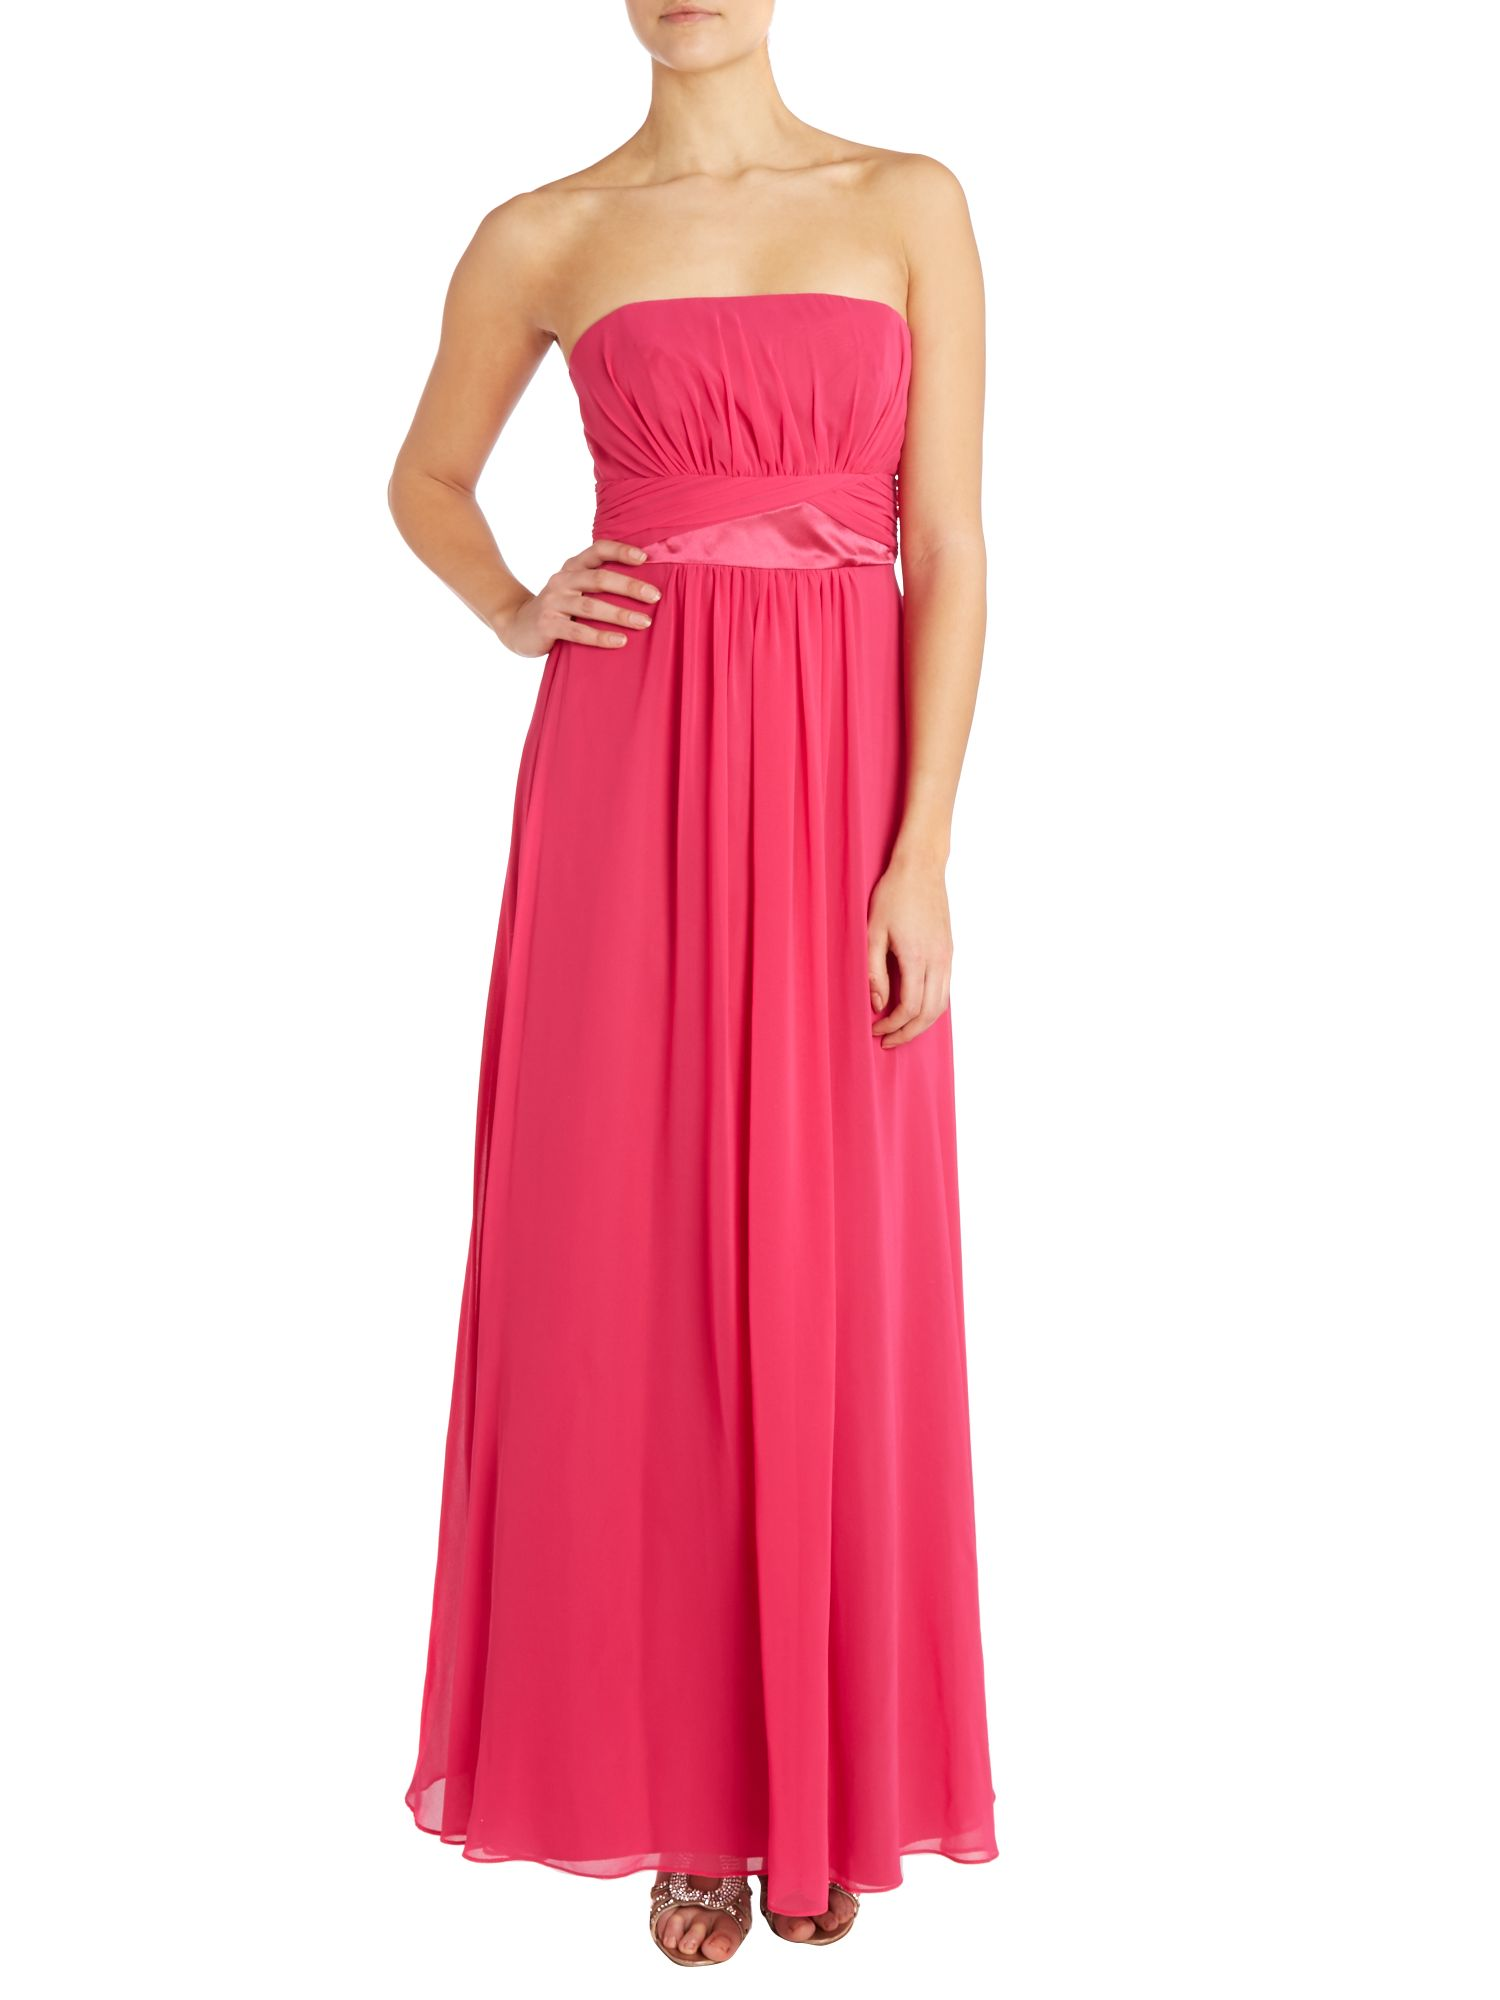 Bridesmaid strapless chiffon dress